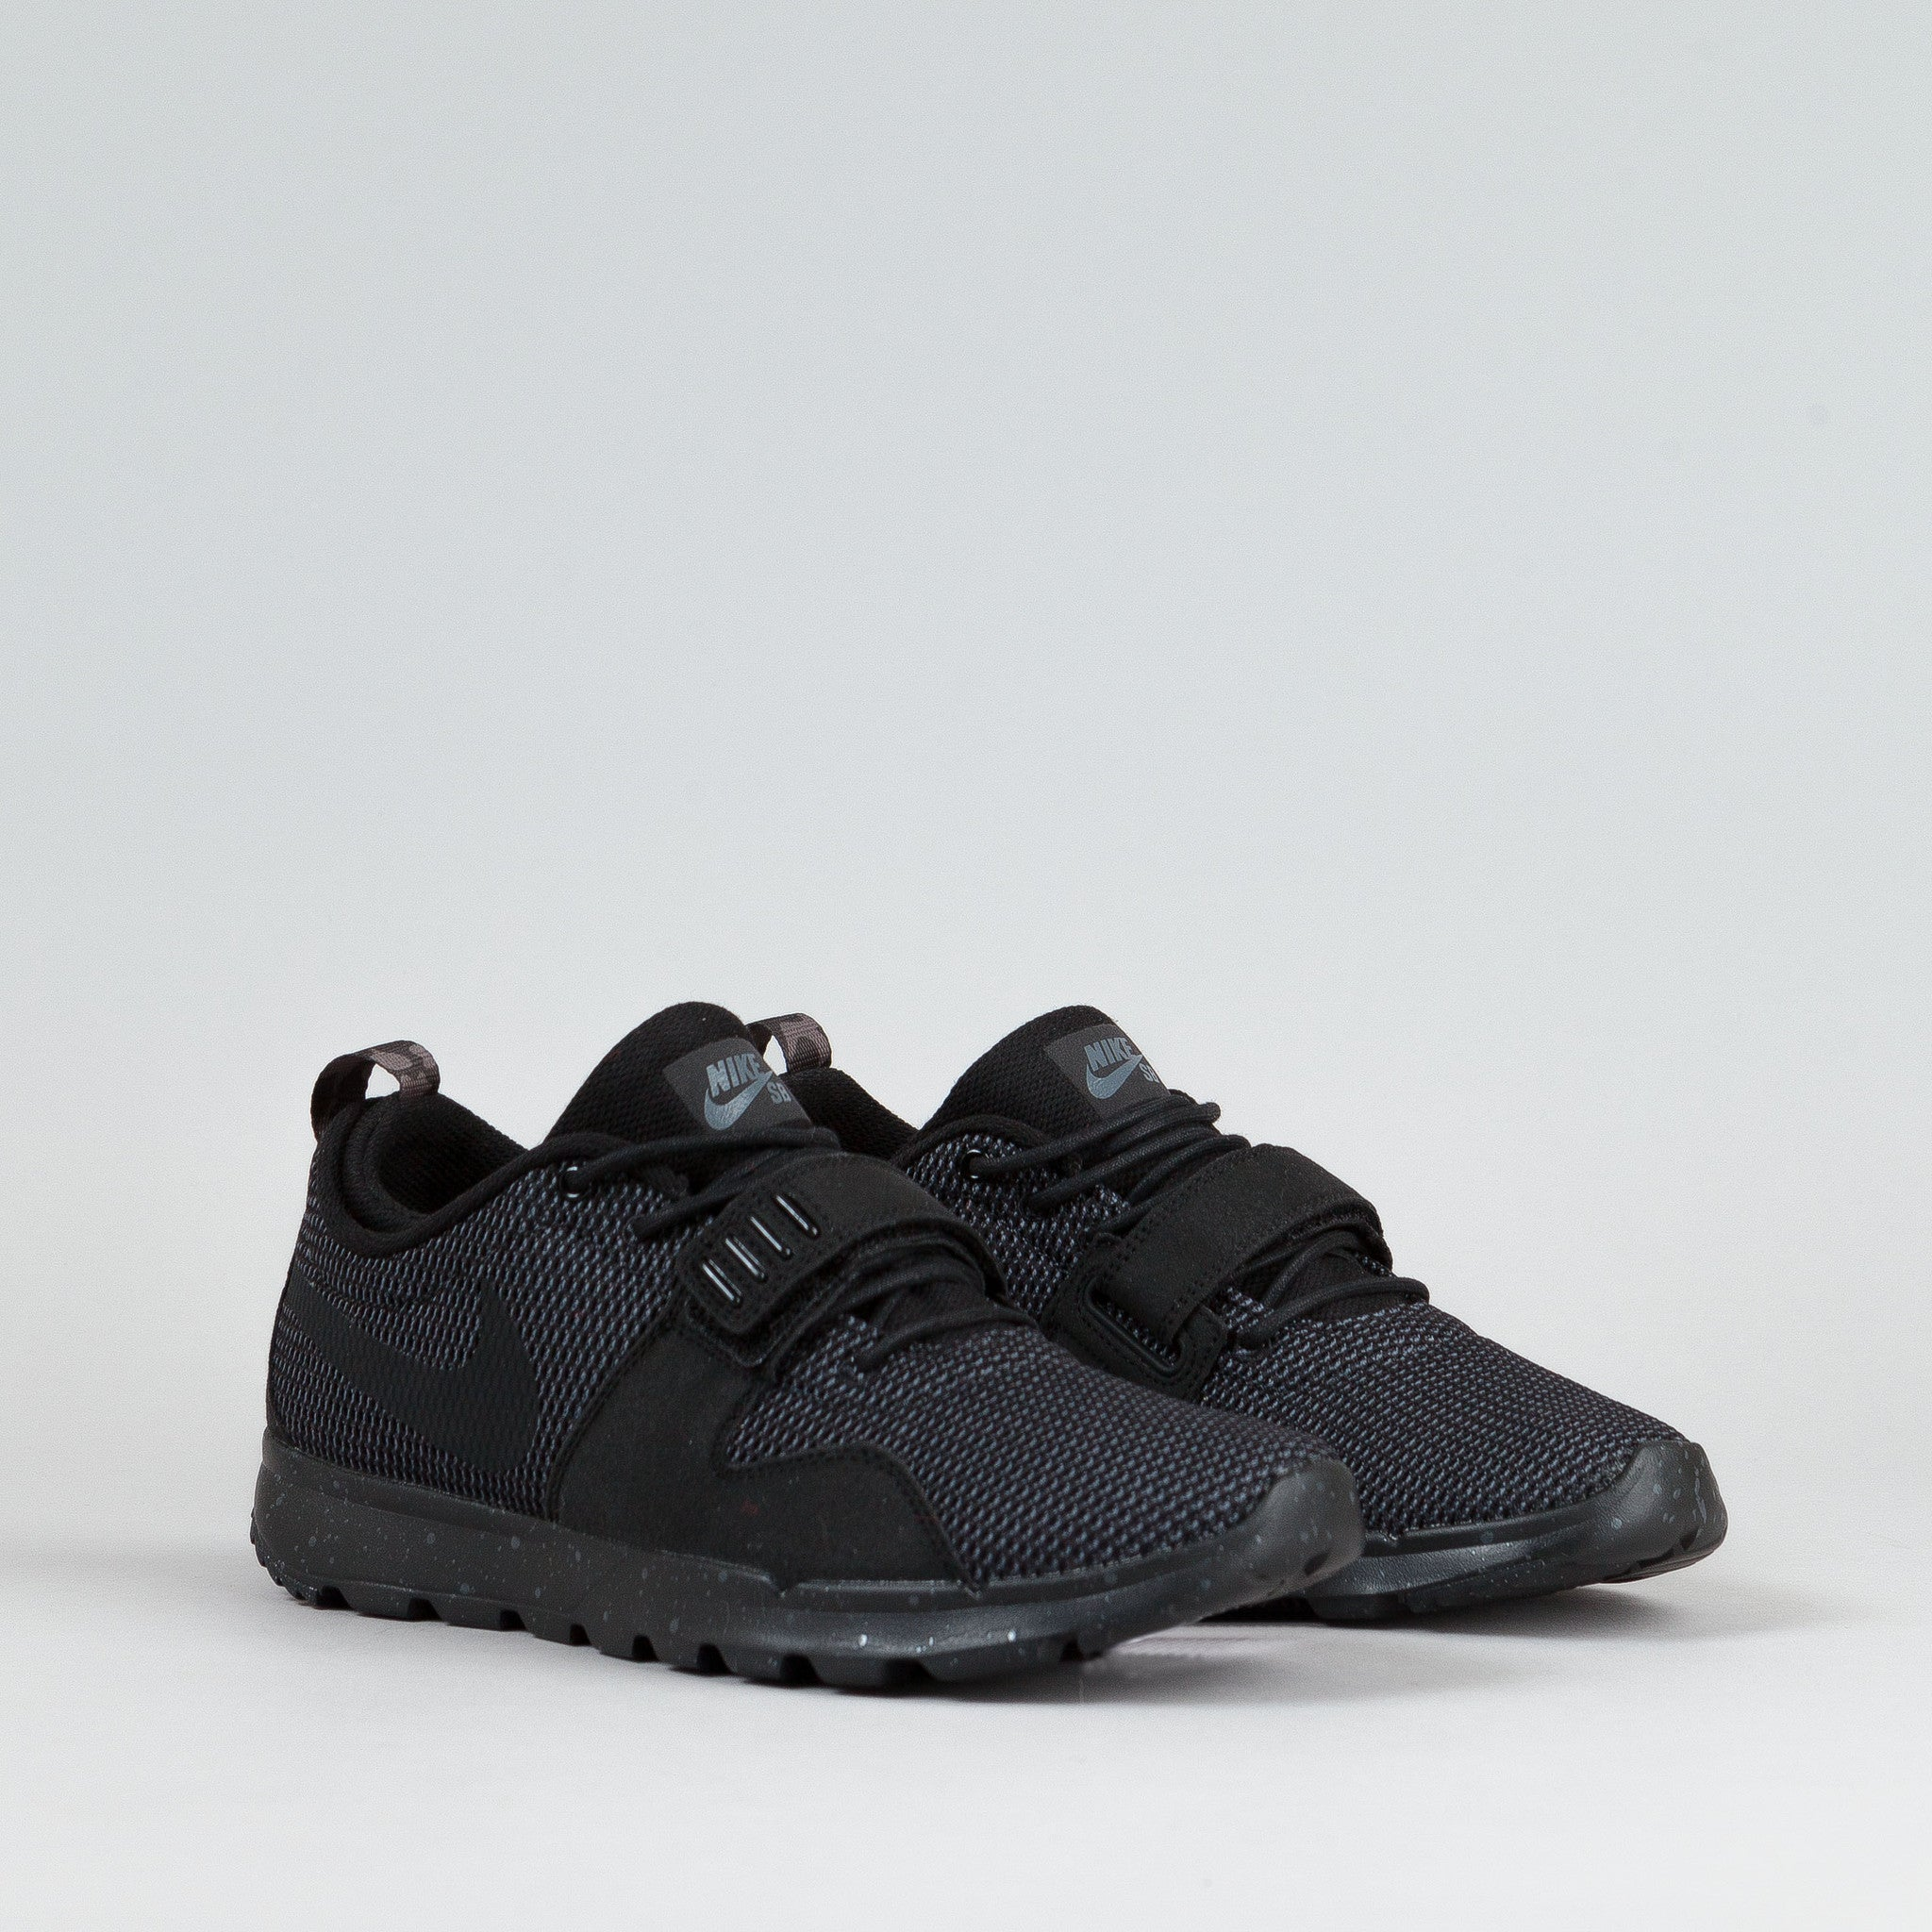 Nike SB Trainerendor Shoes Black / Black - Dark Grey